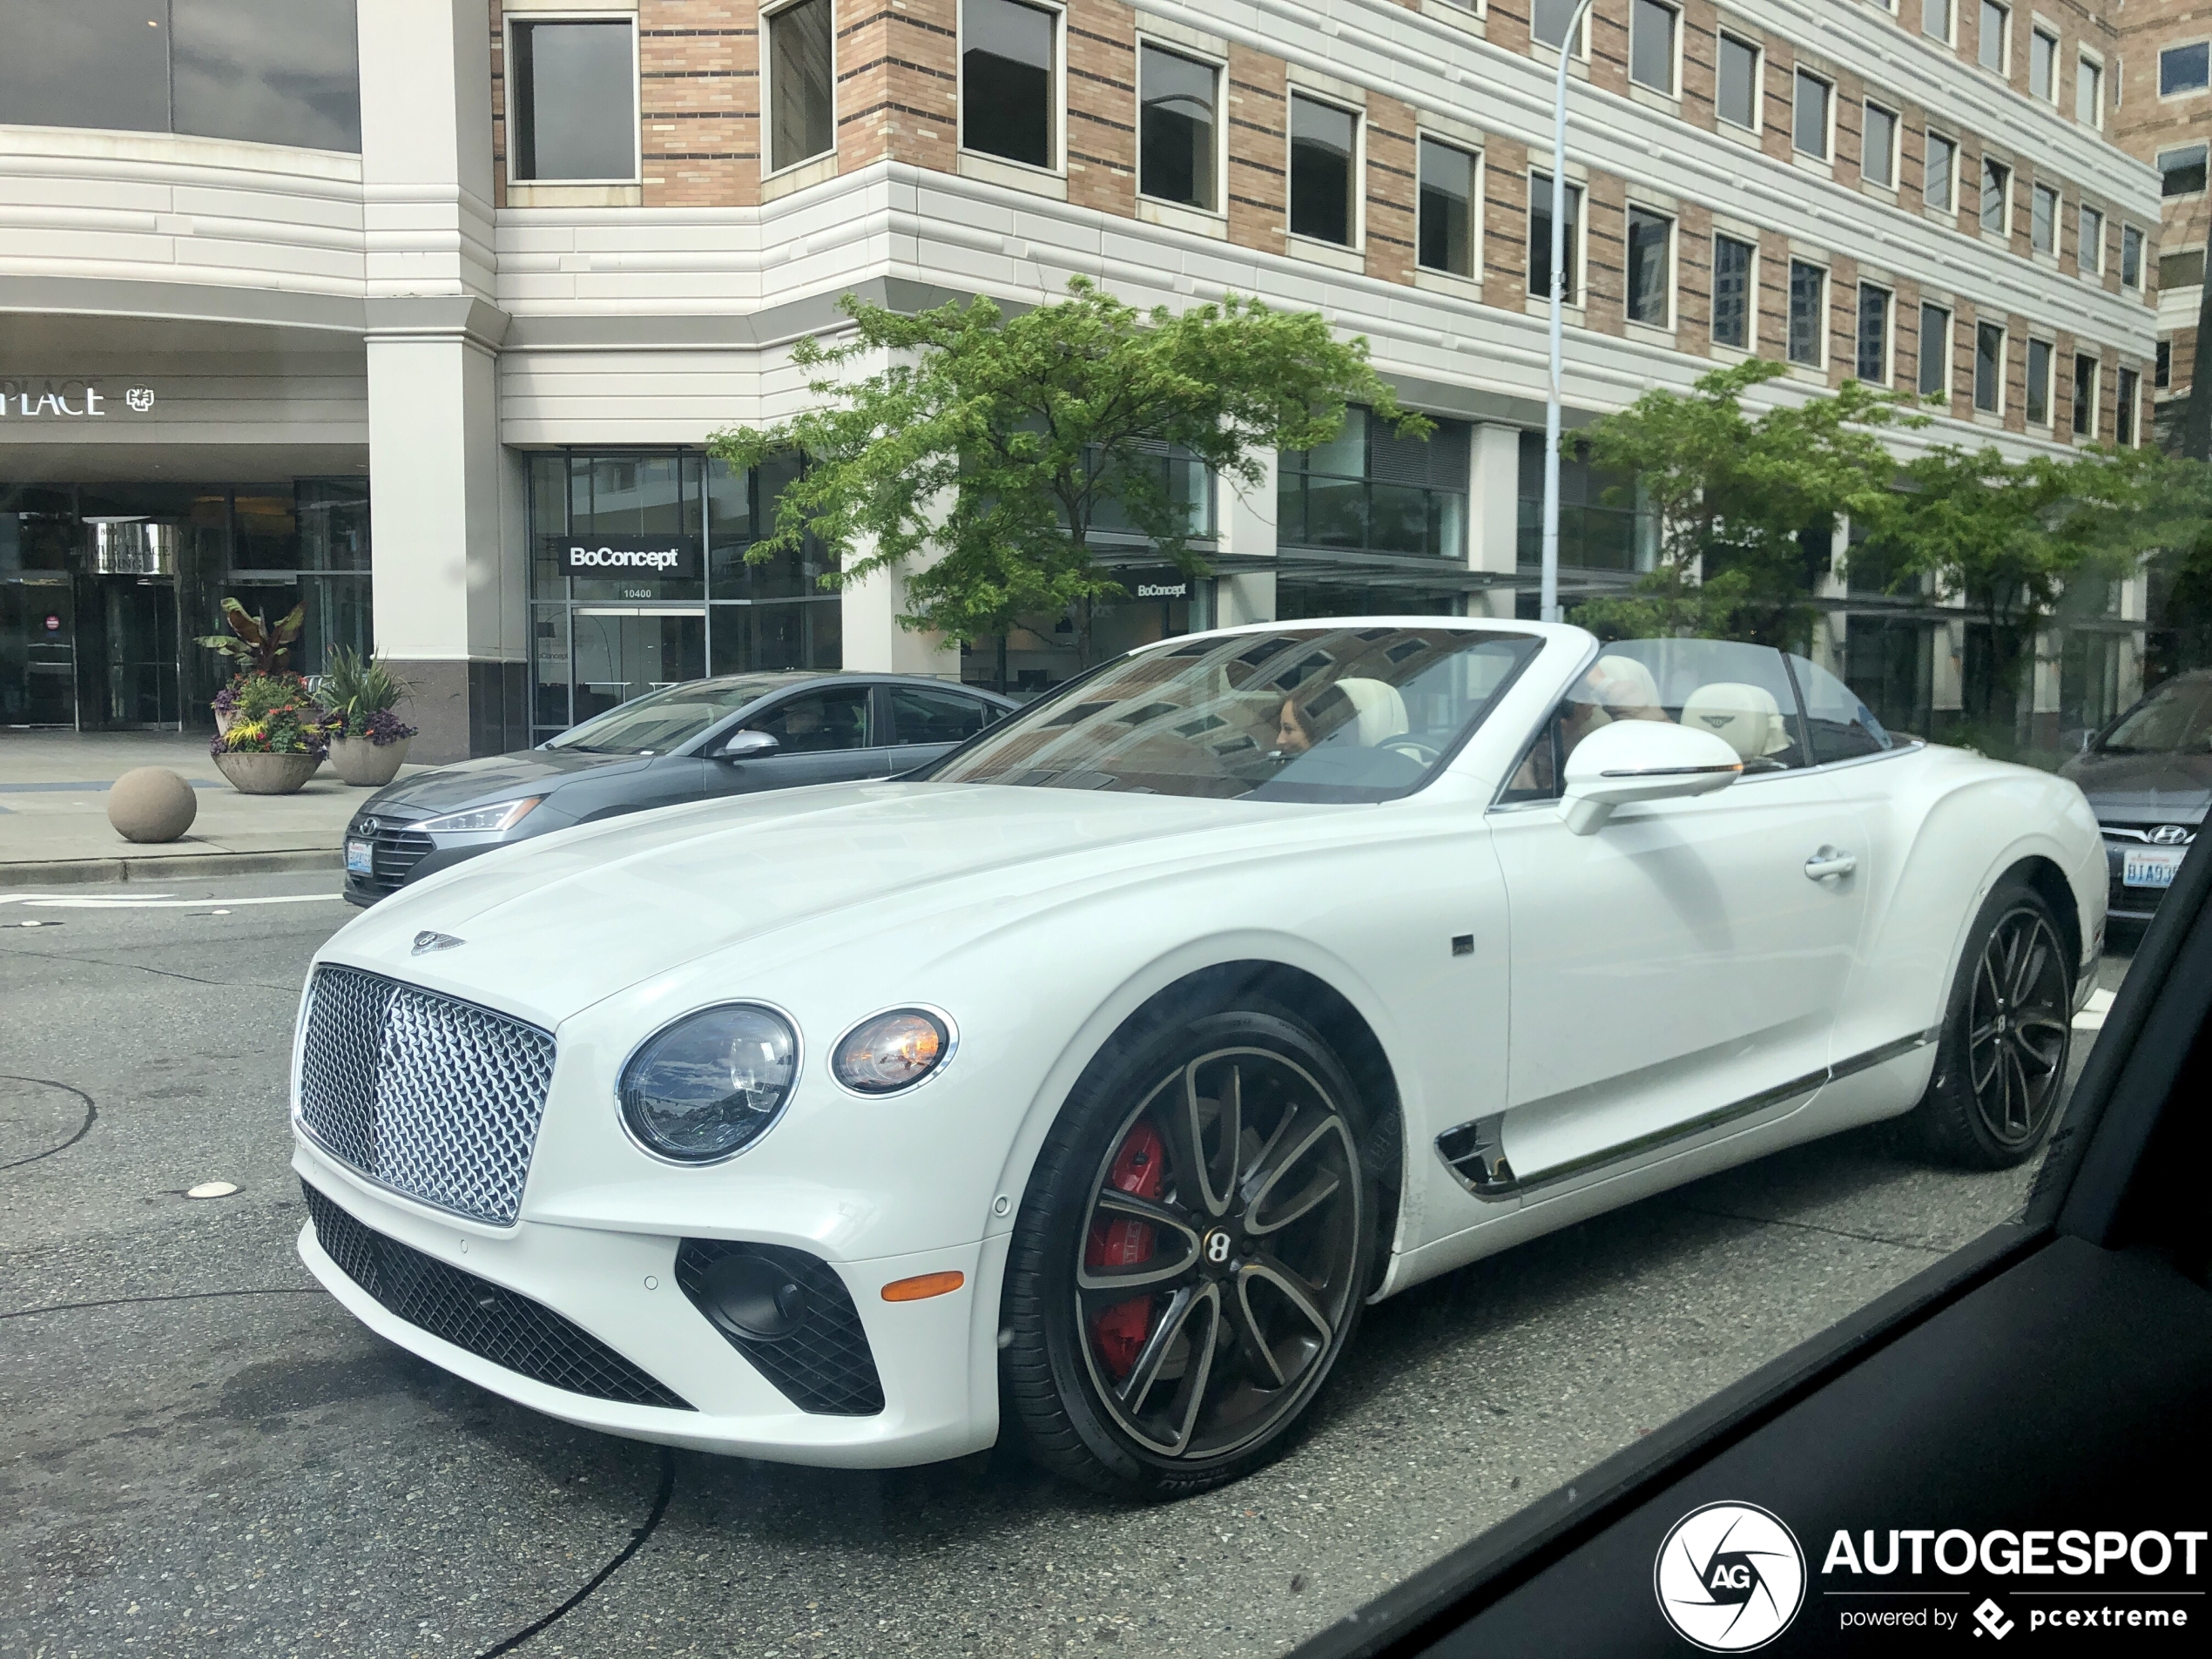 Bentley Continental Gtc V8 2020 First Edition 26 June 2020 Autogespot